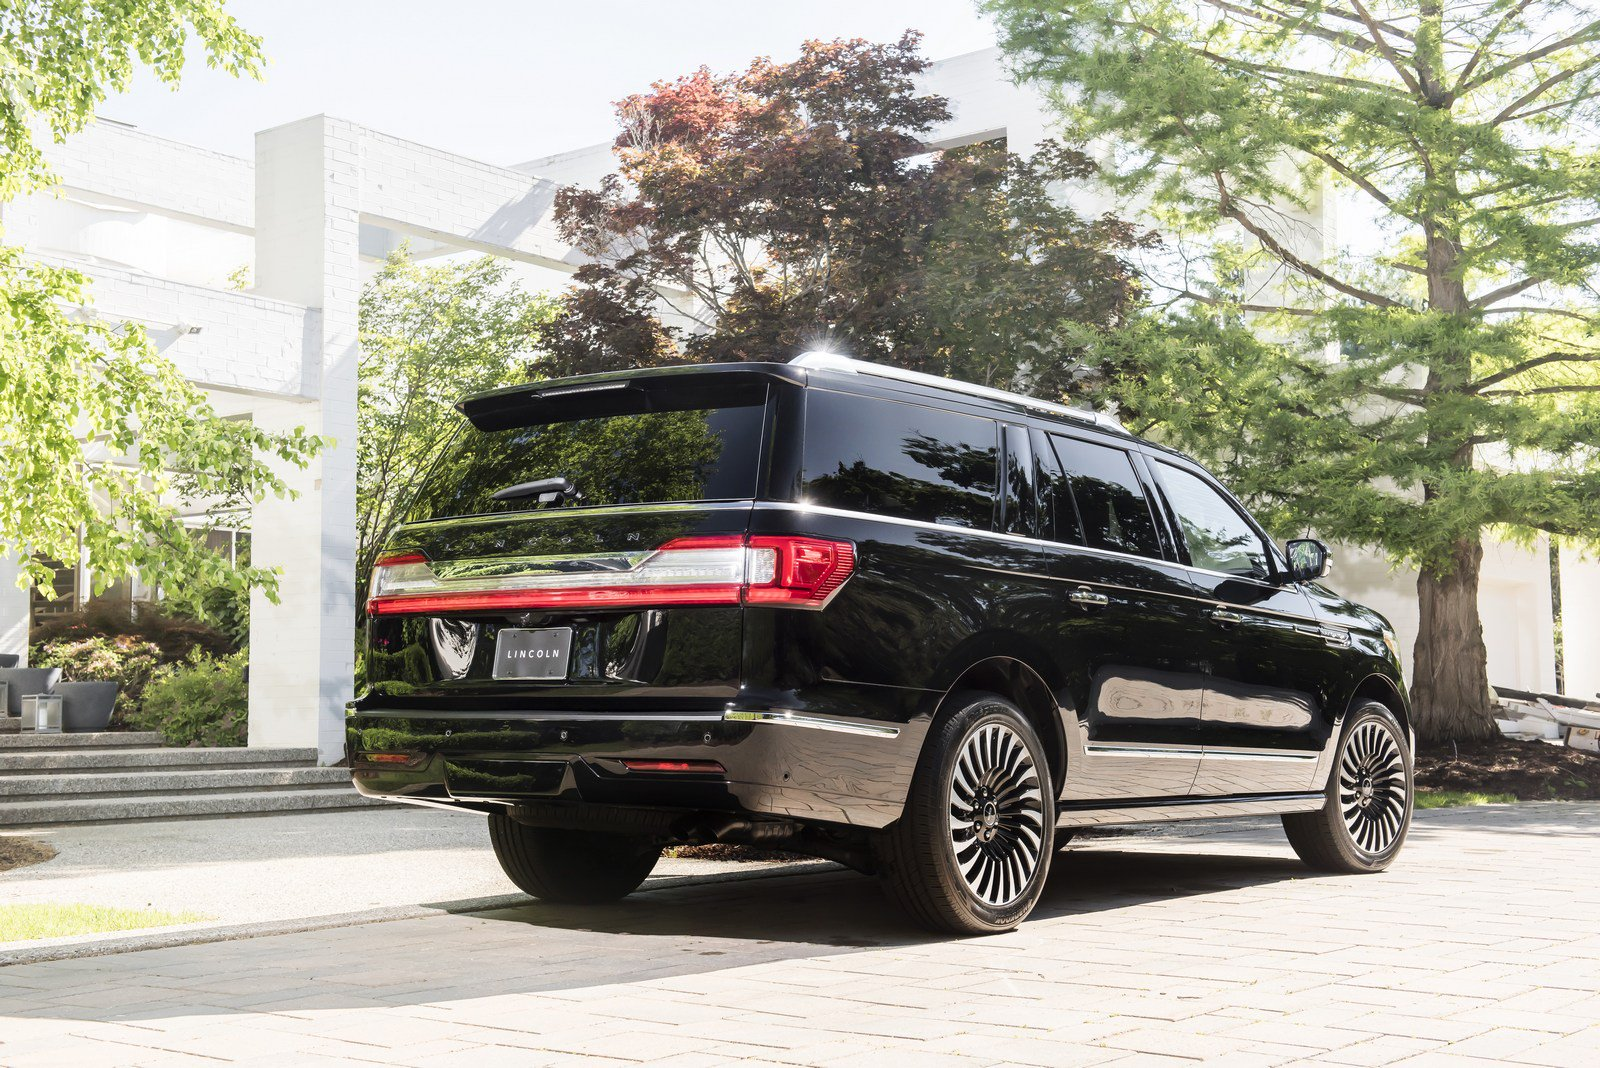 1f6f572d-lincoln-navigator-prices-2.jpg